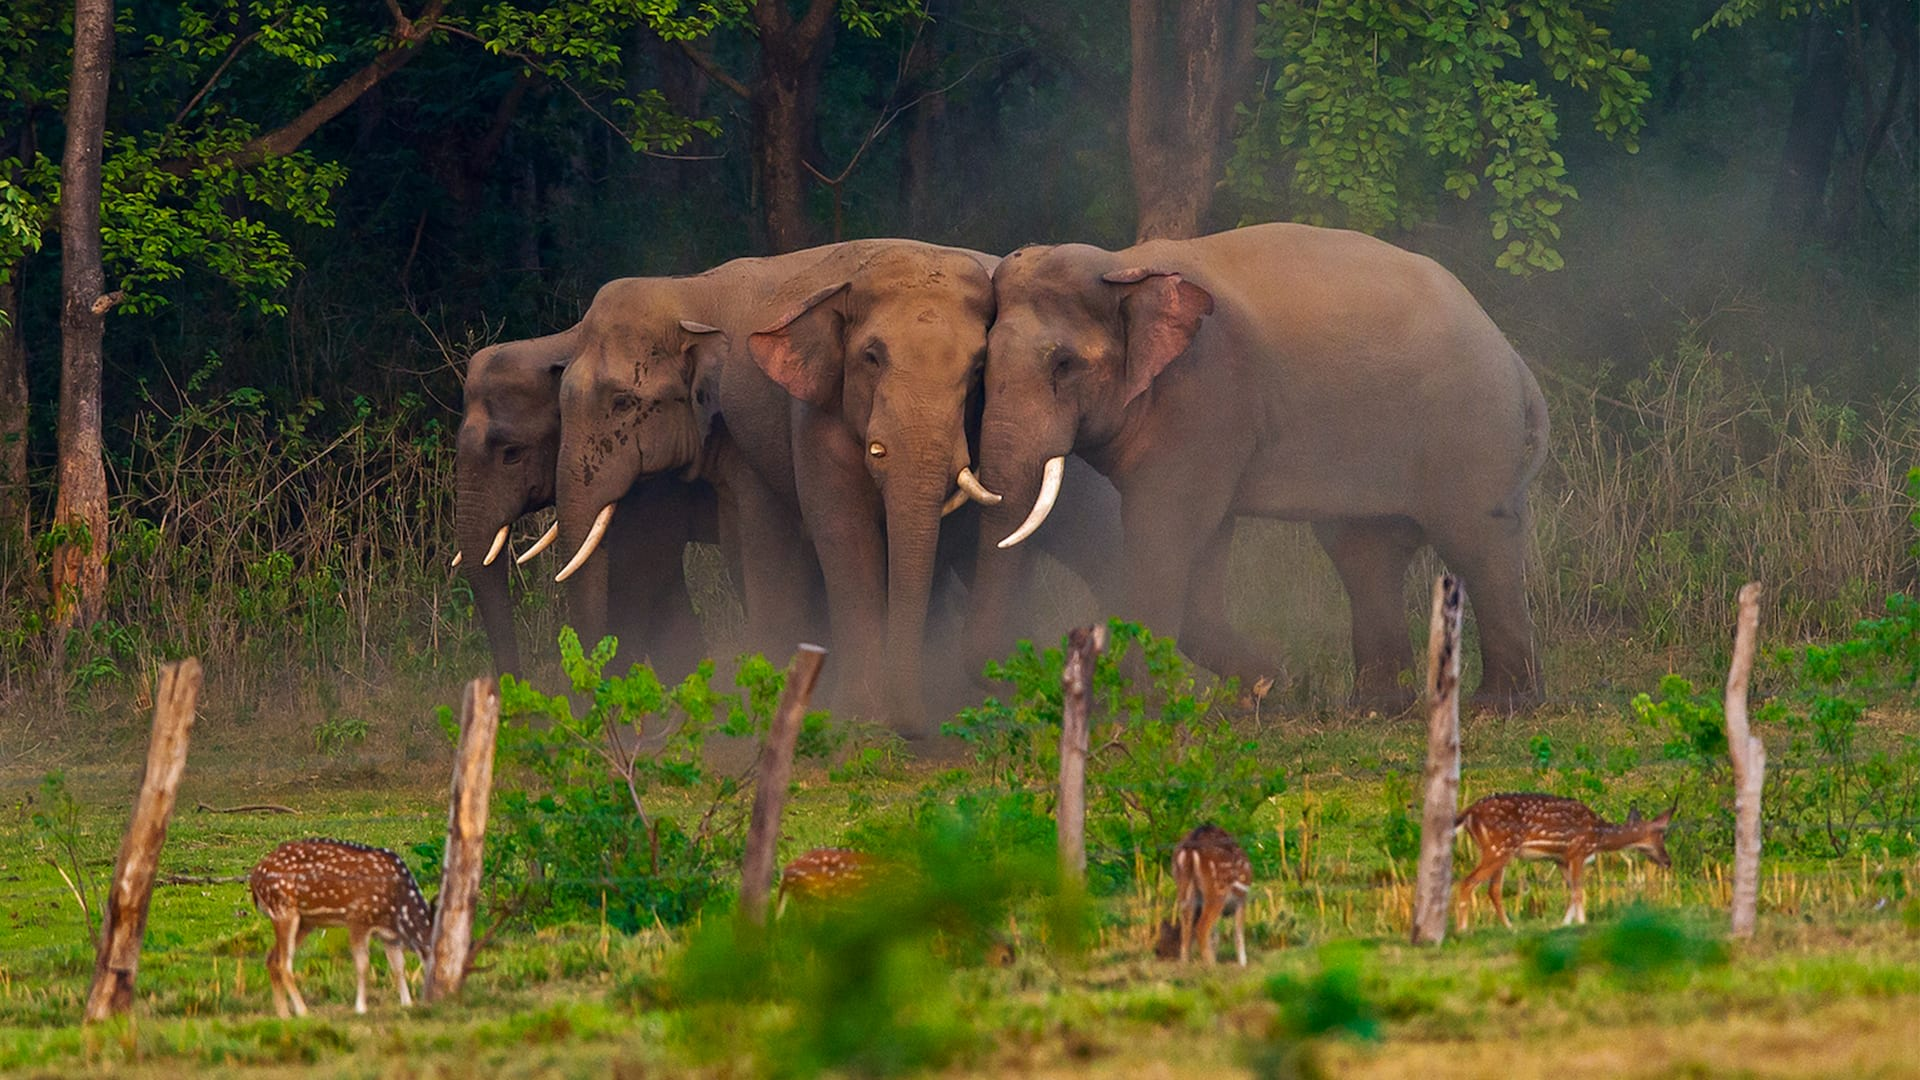 A Family Affair: How Elephants Build Intimate Social Relationships